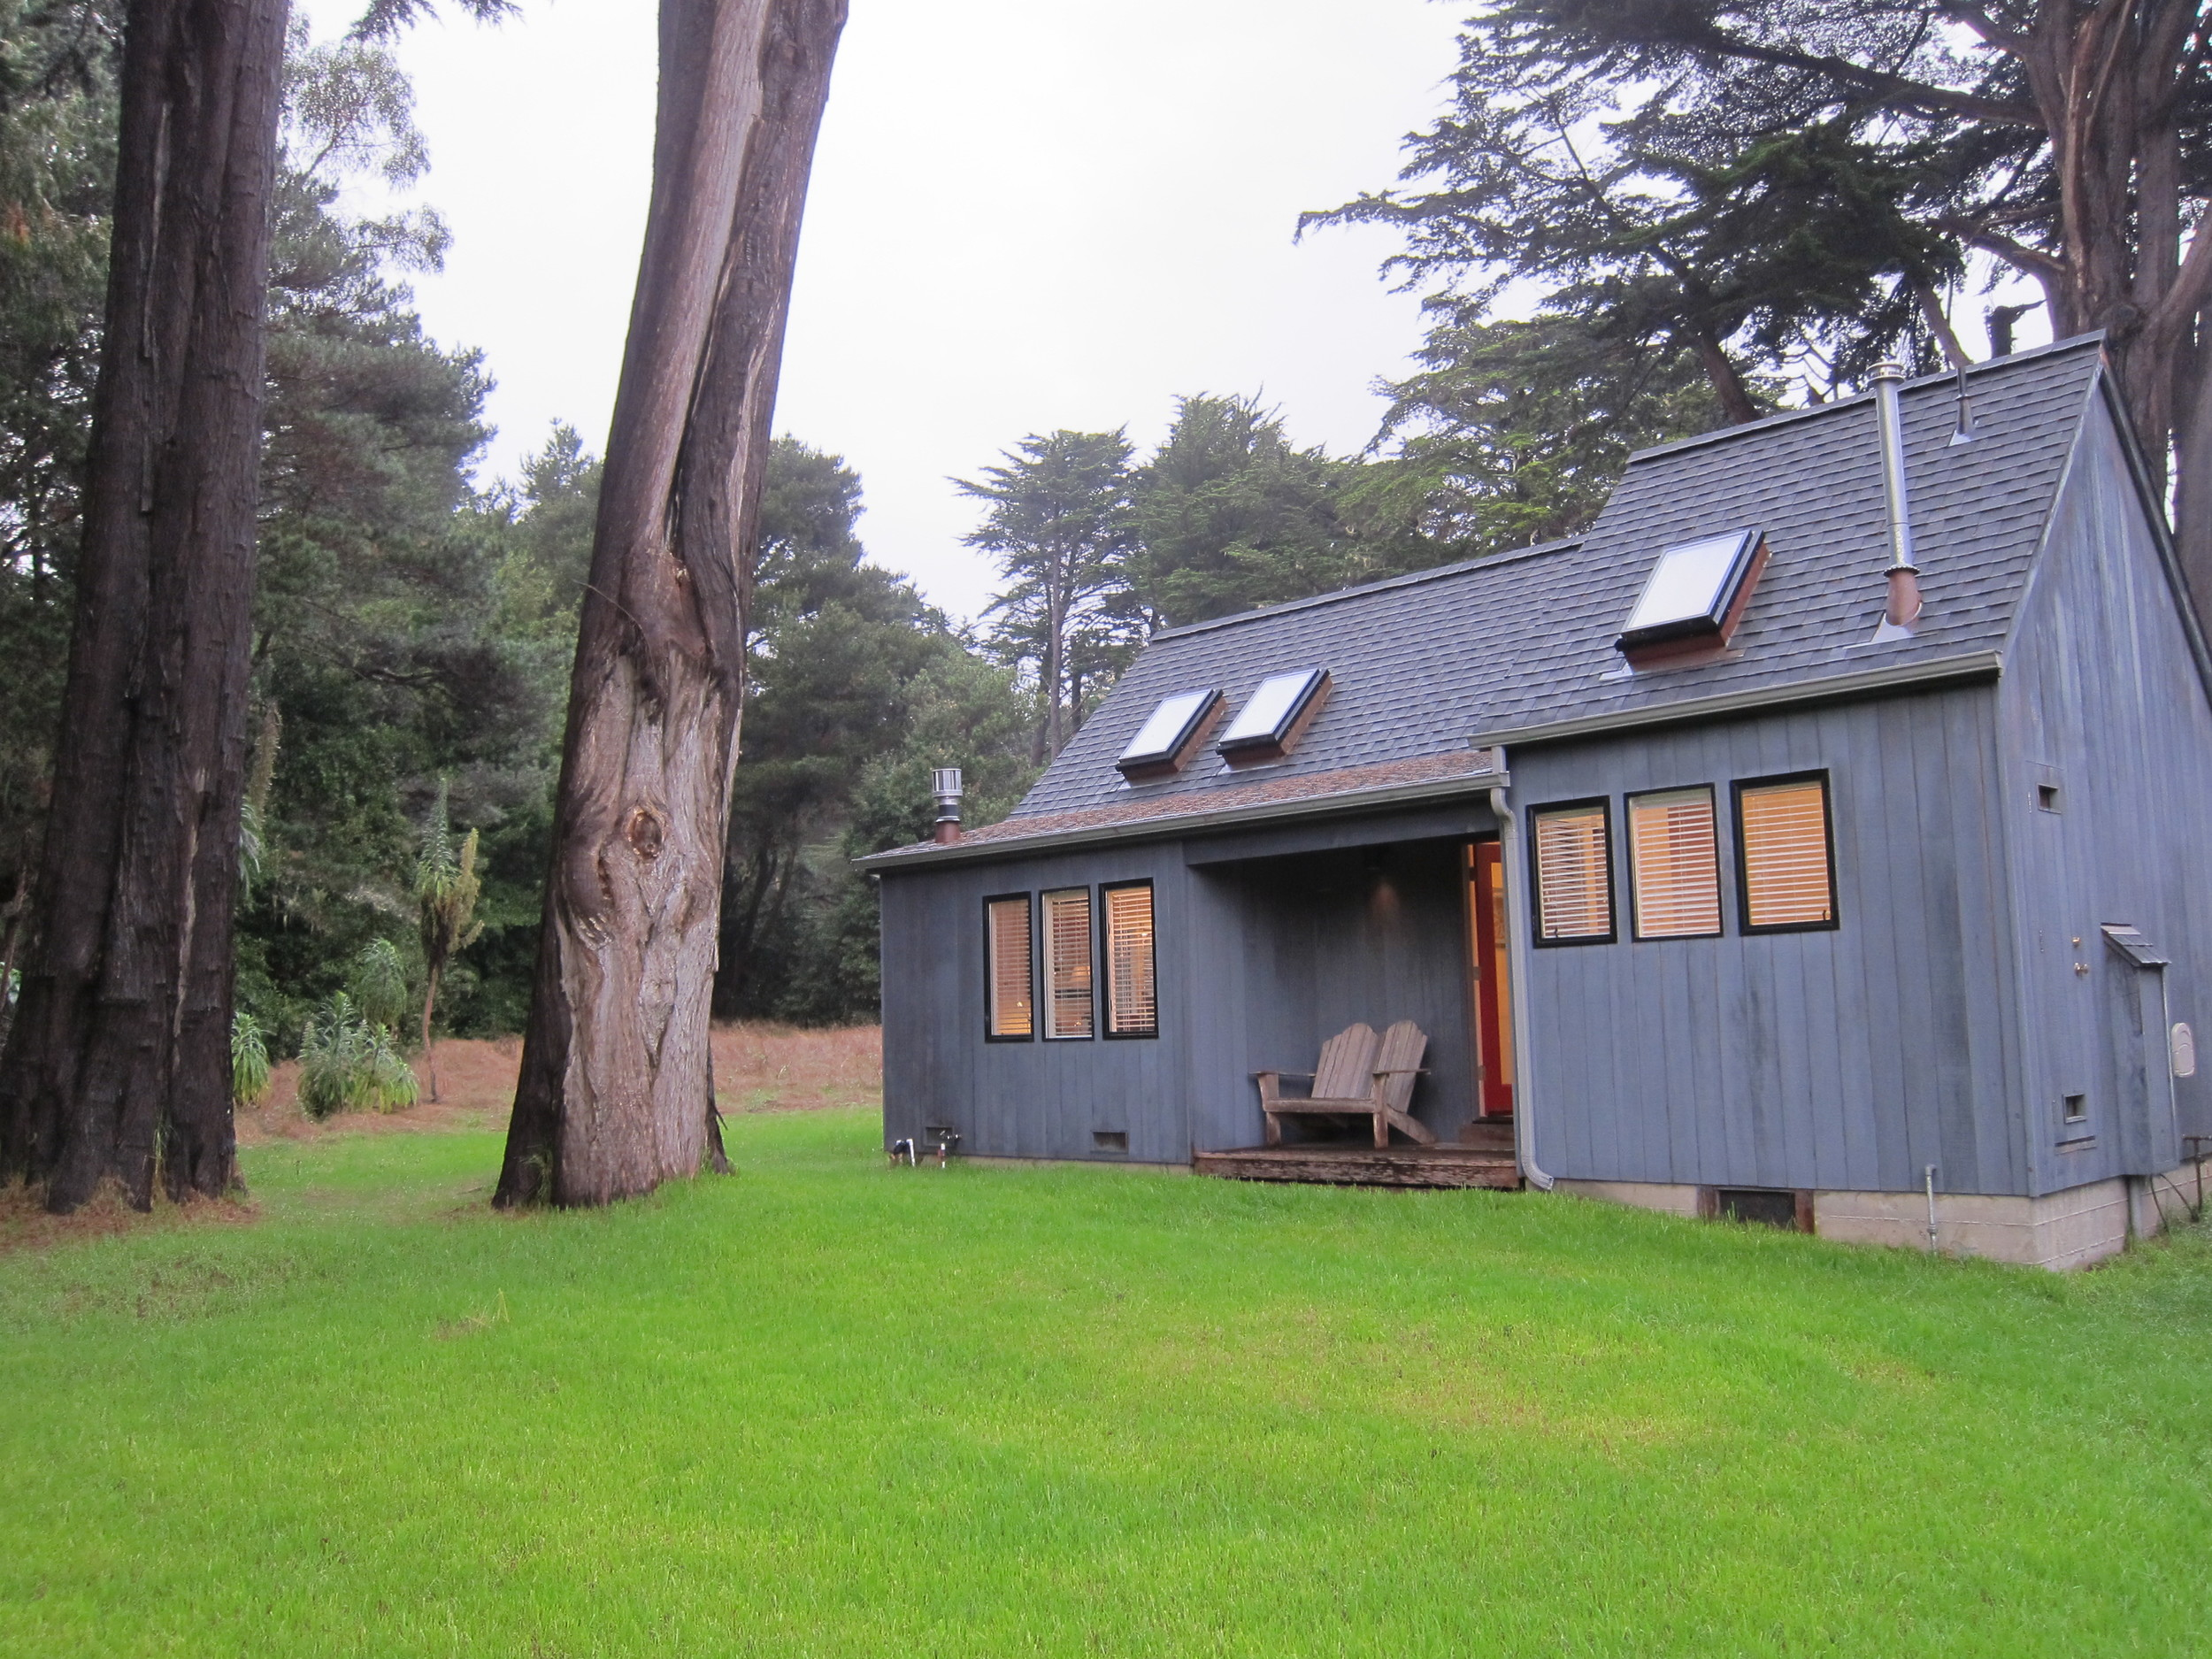 rachel's cottage from the west, with cypress trees